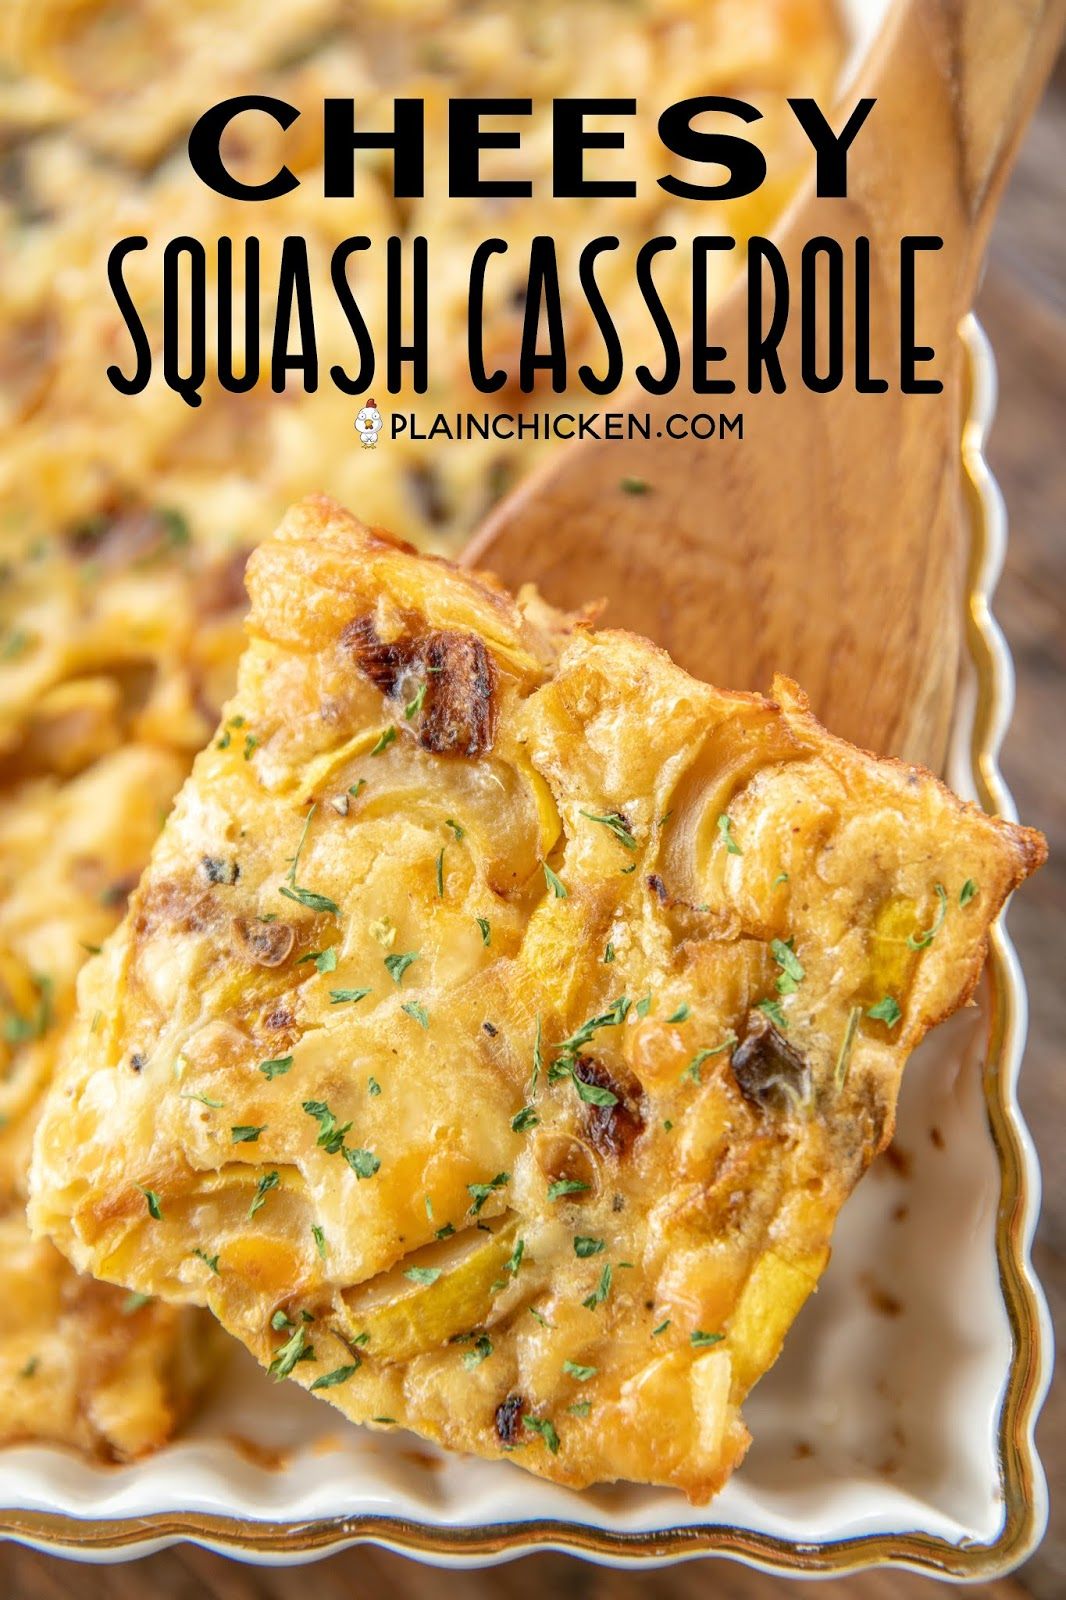 scooping squash casserole from baking dish